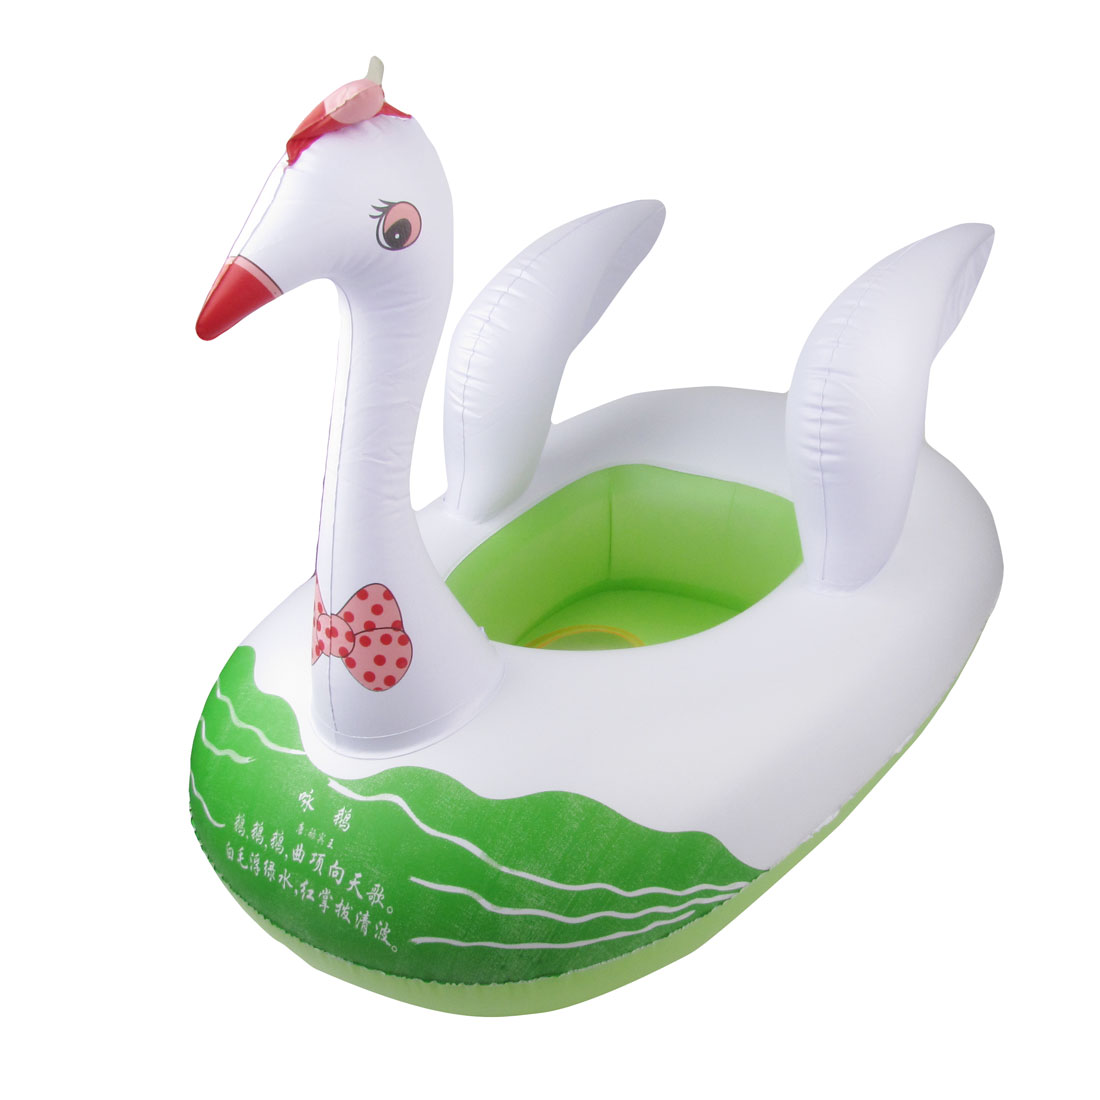 Baby Bowtie Pattern Swan Shaped Inflatable Swimming Seat Boat White Green